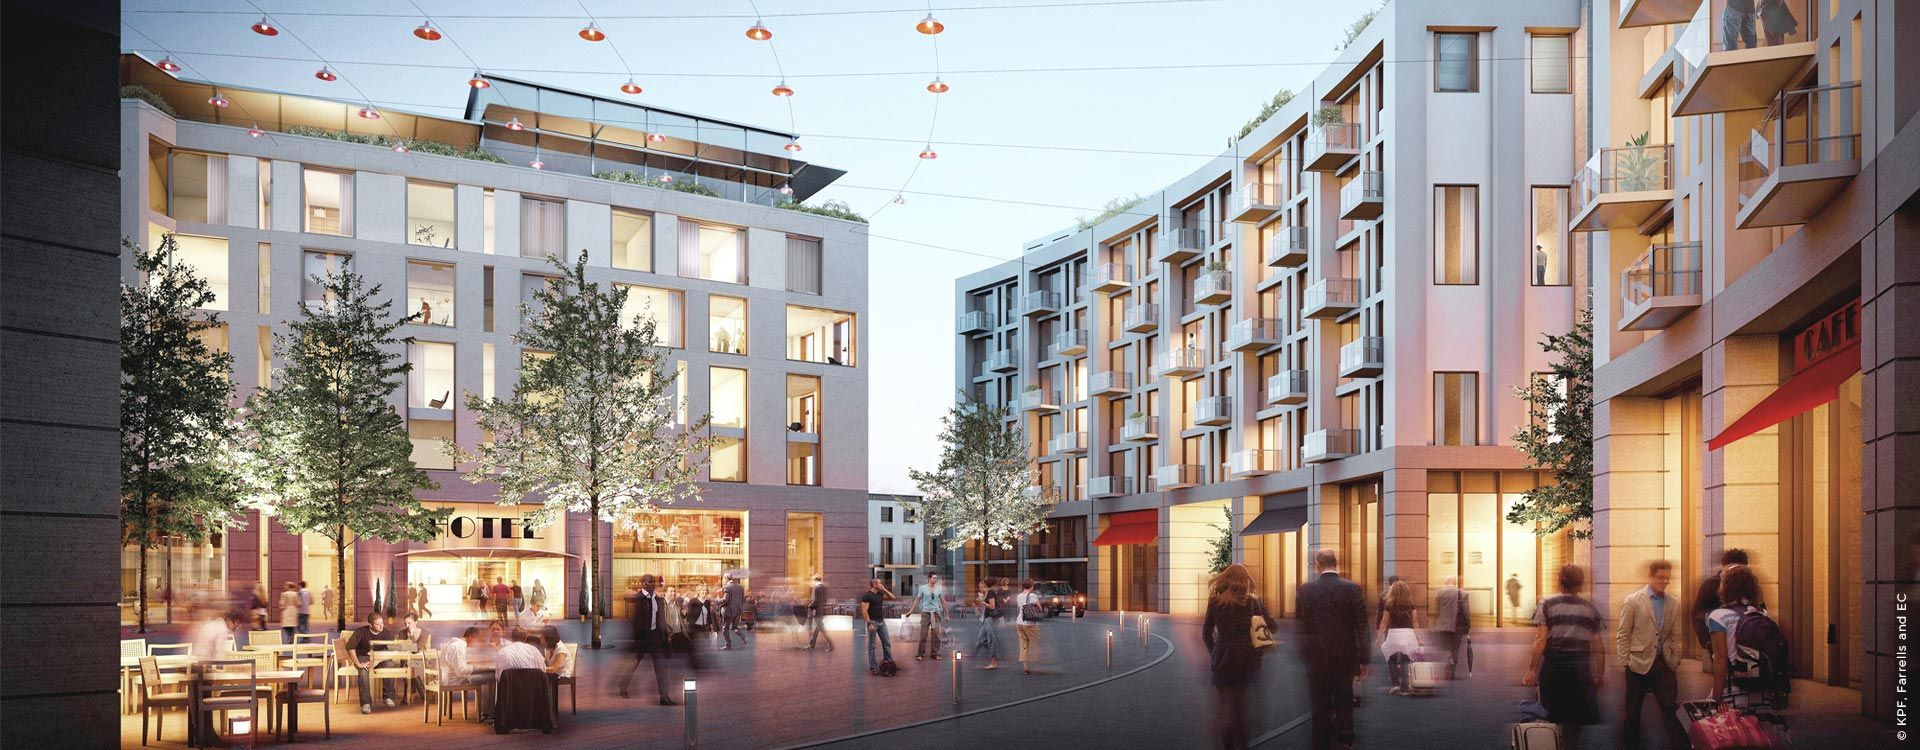 bnr-Earls-Court-Redevelopment--KPF-Farrells-and-EC